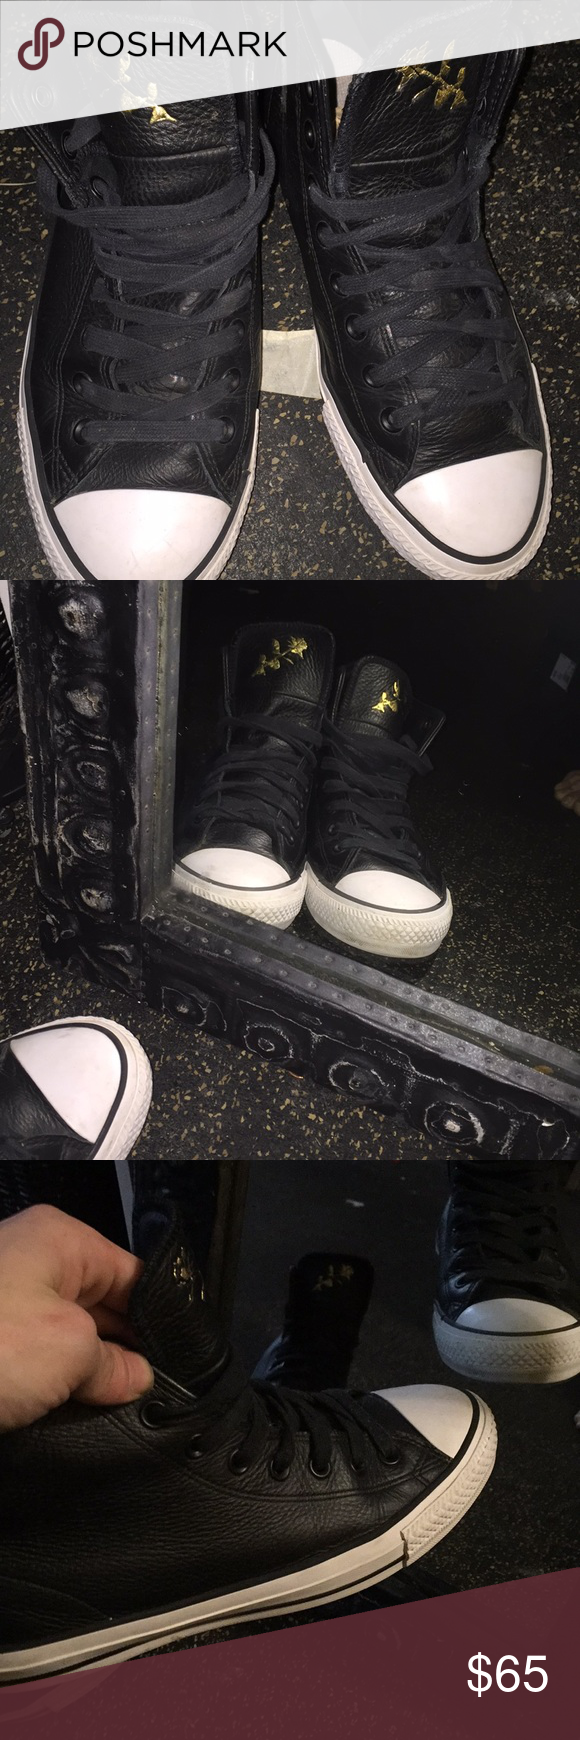 informal rock Permanentemente  Converse Black with gold rose gold converse chuck Taylor all star Emblem.  Nike i…   Black leather converse shoes, All black leather converse, Converse  leather shoes